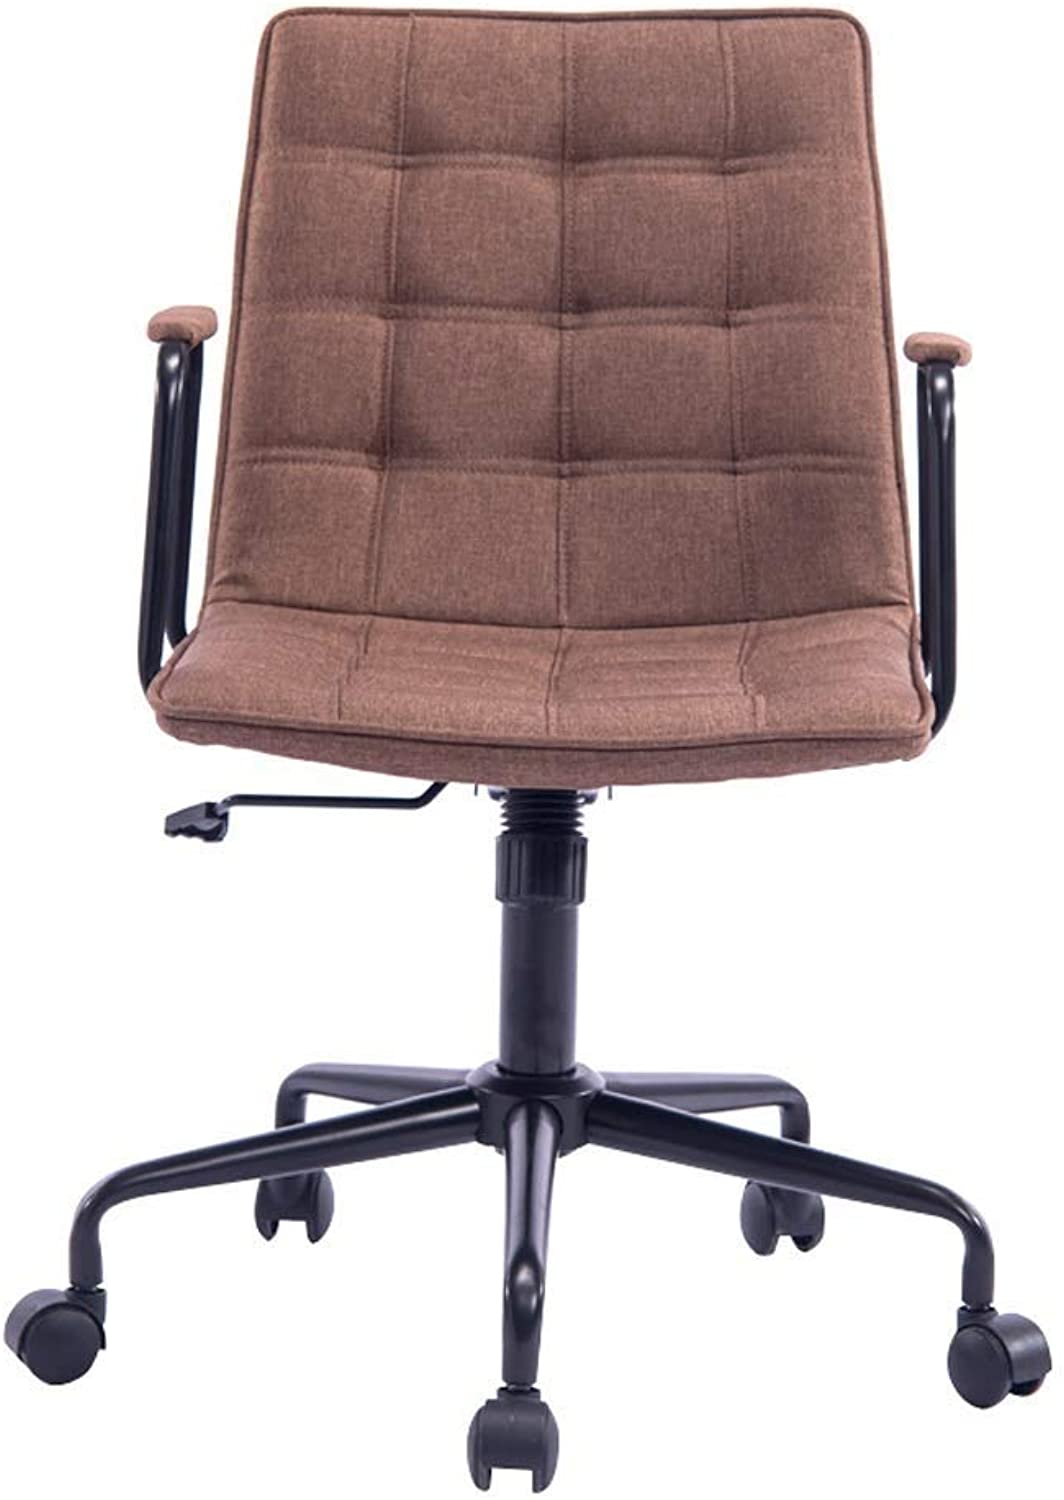 A-Lnice Stylish Computer Desk Chair Adjustable Gas Lift Stool Home Office Study Room Furniture with Padded Armrests (color   Khaki, Size   B)